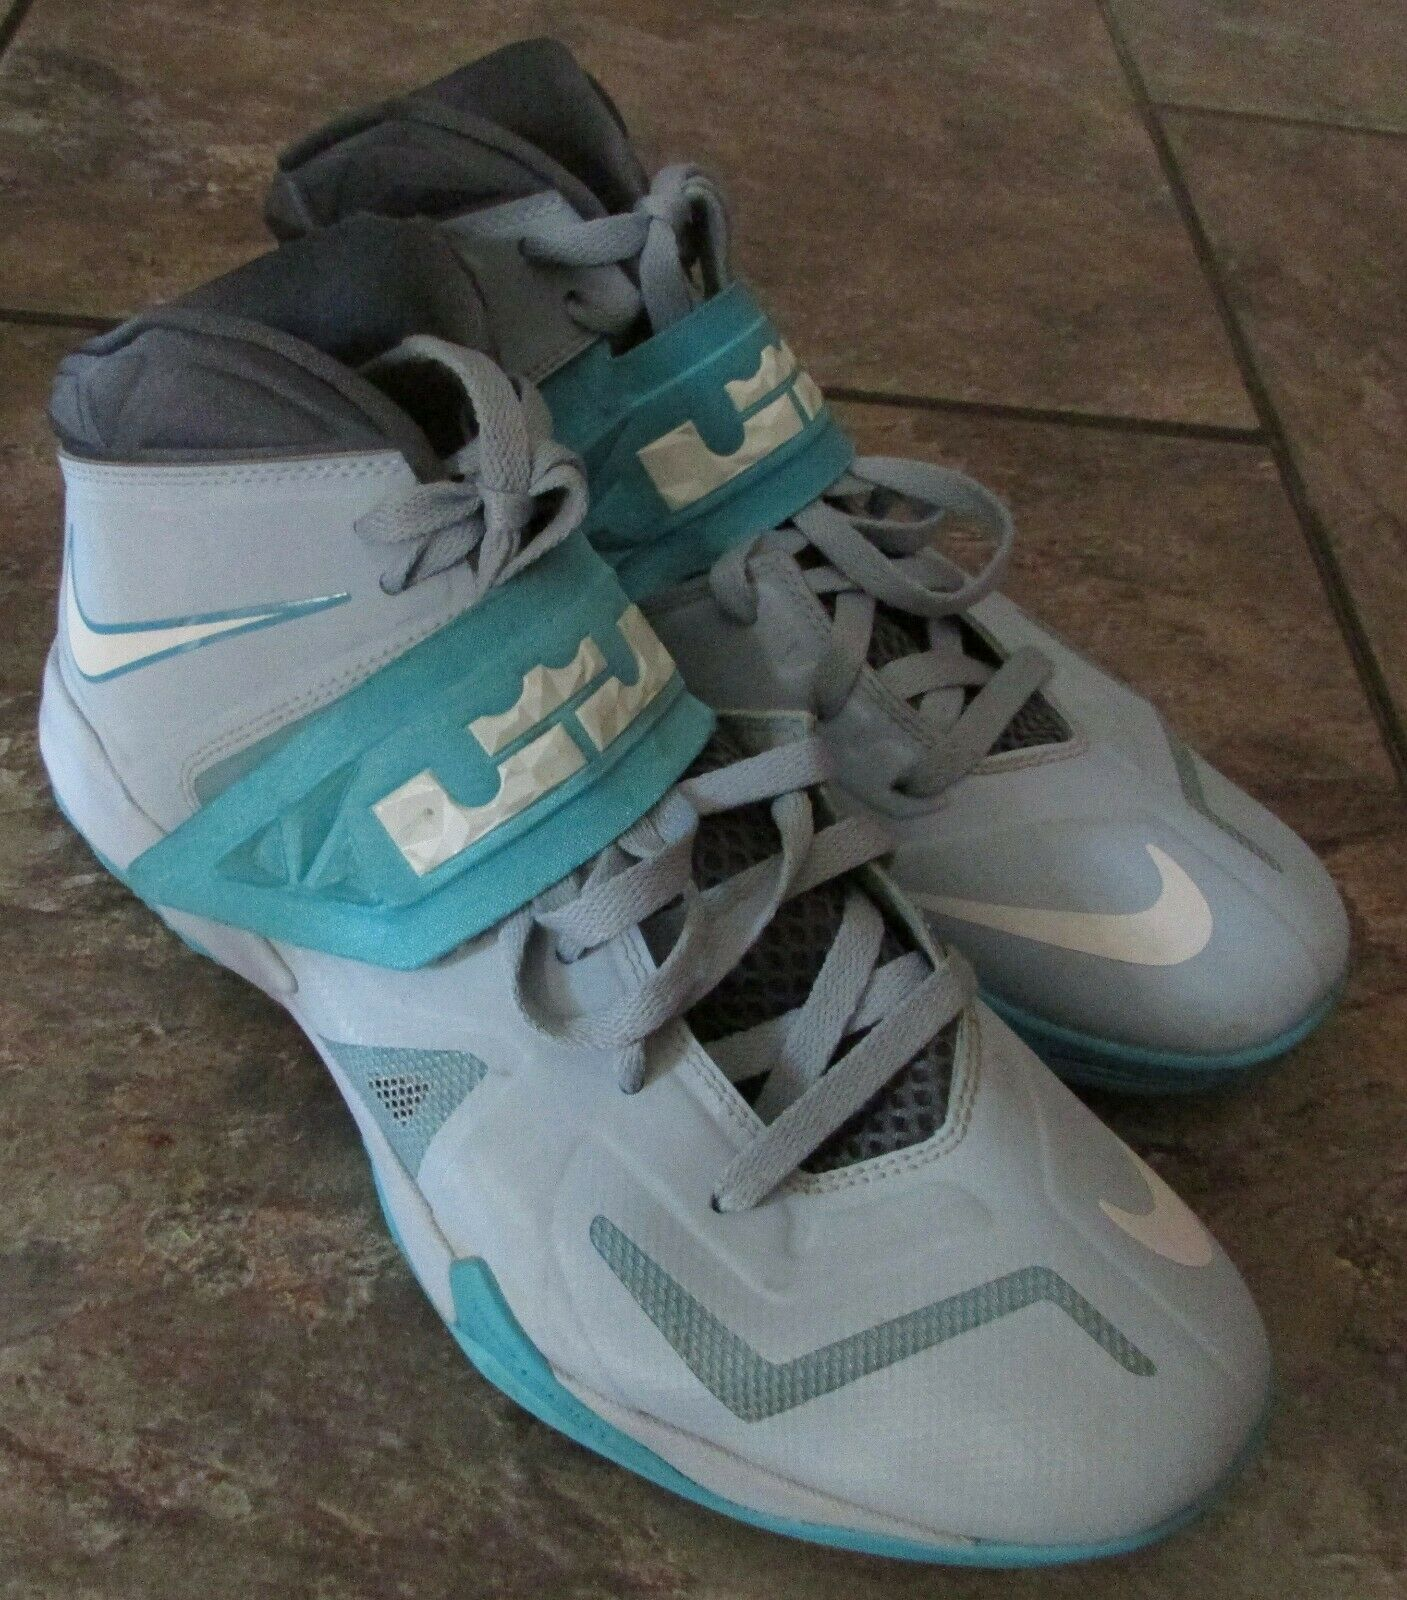 Nike Lebron Zoom Soldier 7 VII Light Armory bluee  599264-402 Sz 11